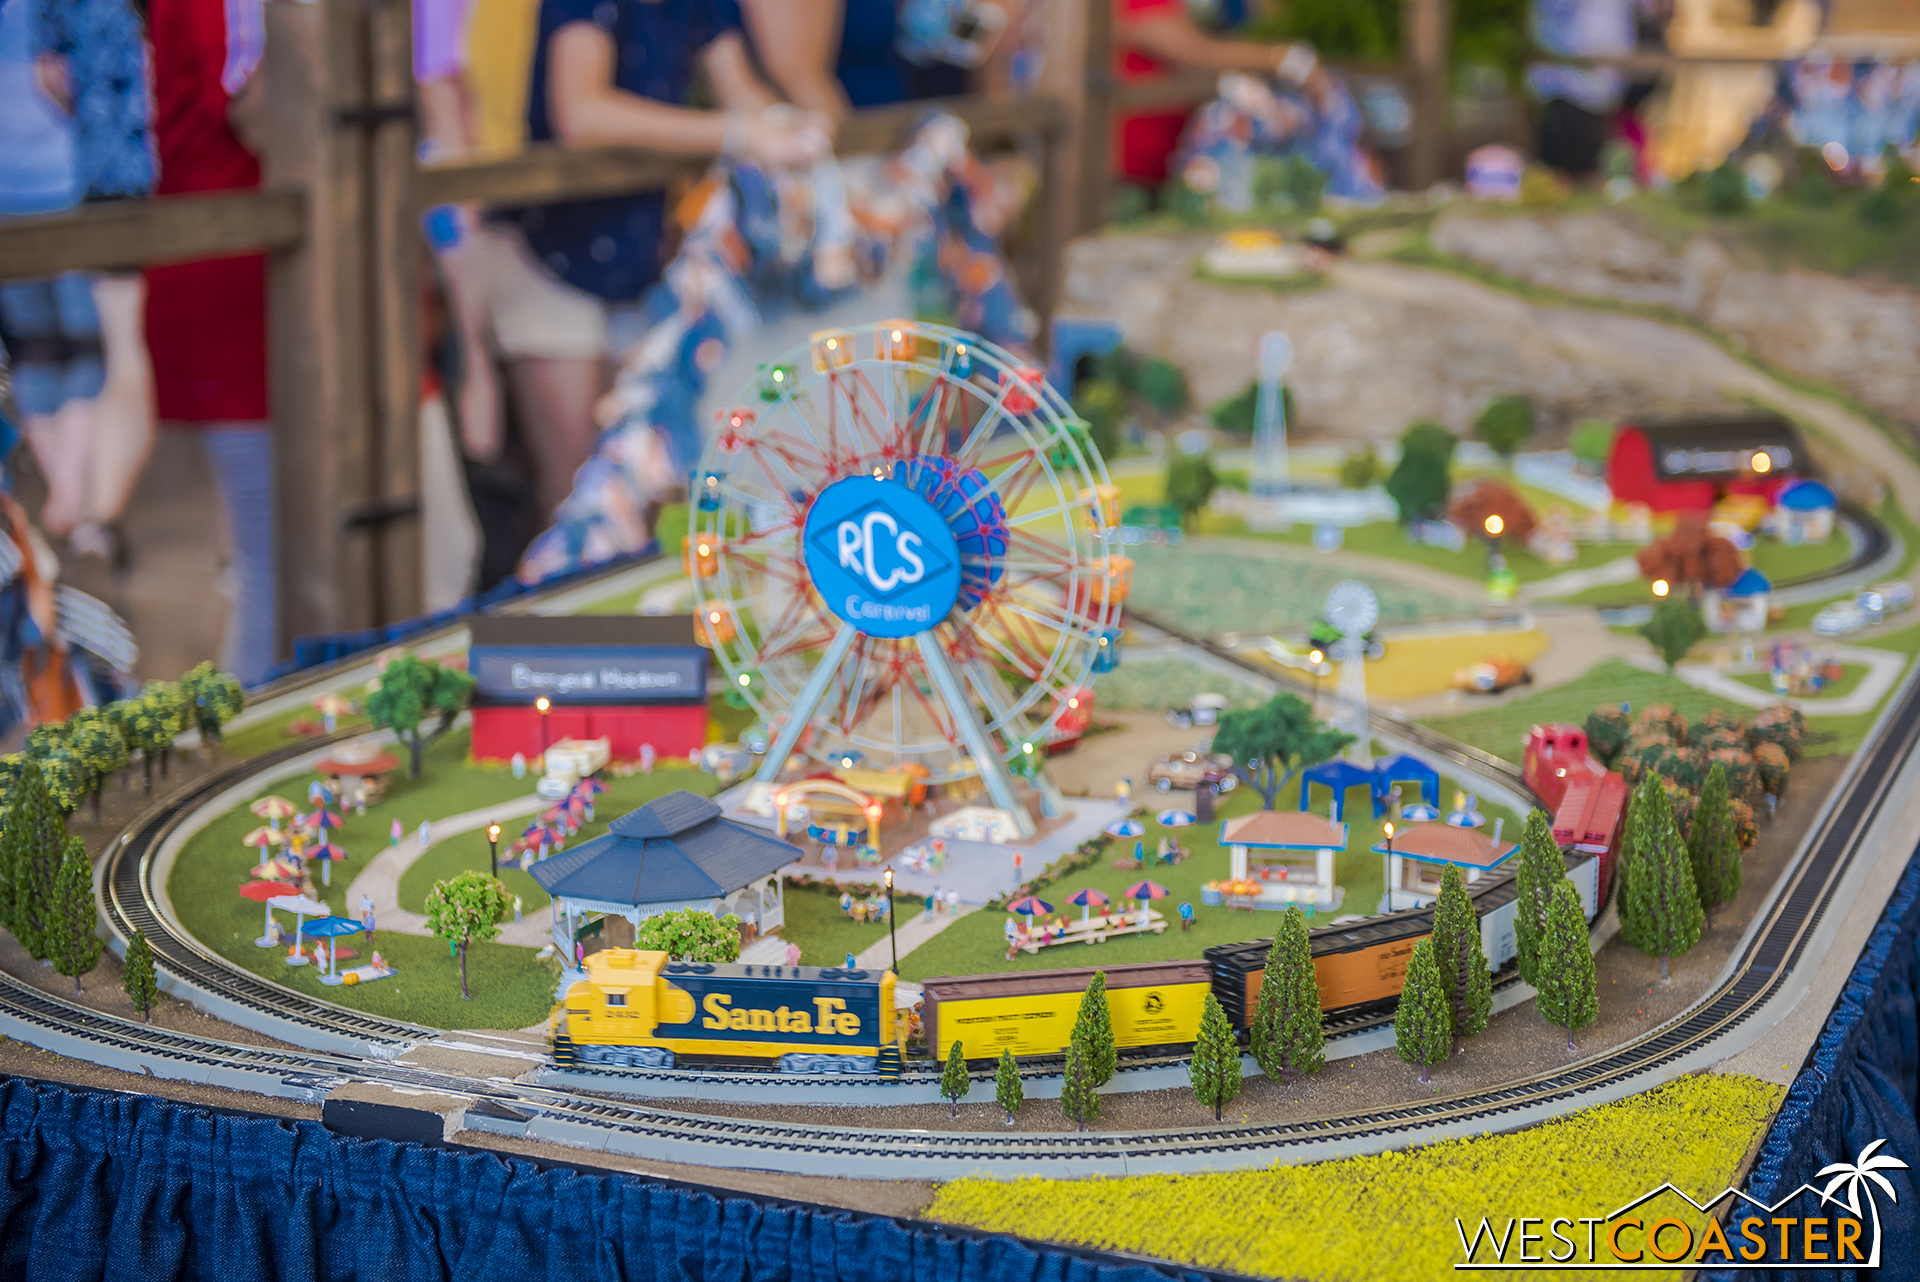 There's a cool miniature railroad this year too.